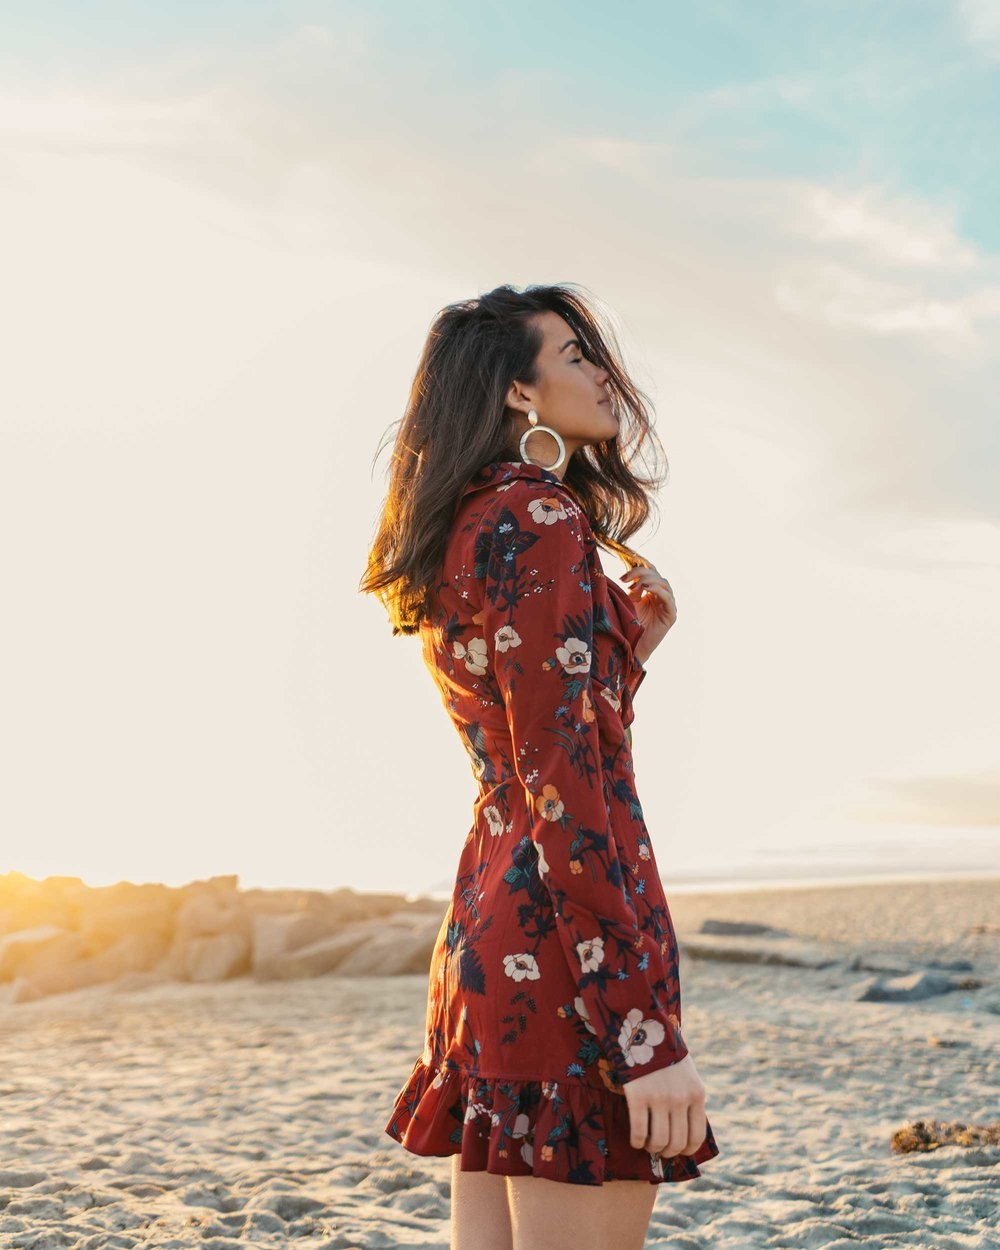 BURGUNDY-FLORAL-FRILL-WRAP-MINI-DRESS-Newport-Beach-California-Summer-Dress-2.jpg